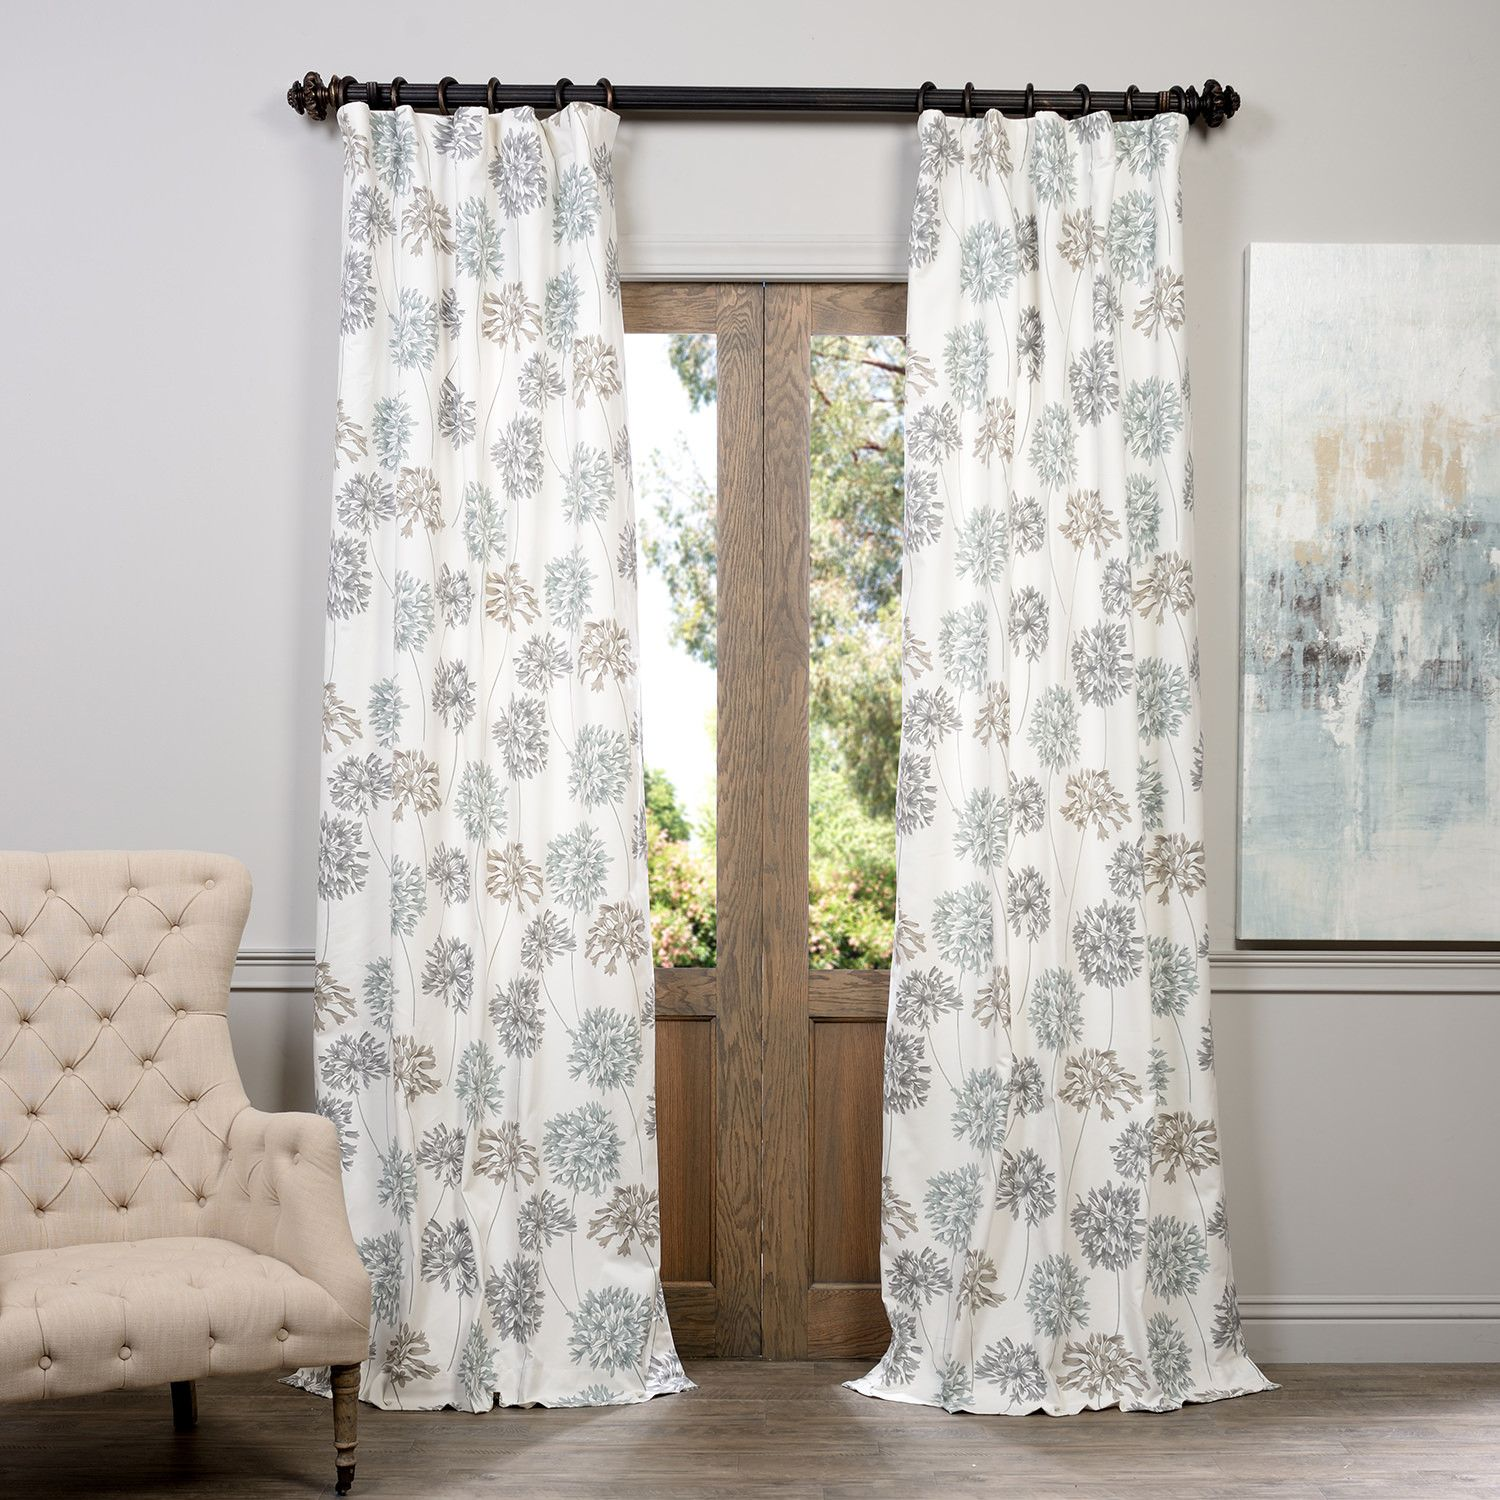 Allium Printed 100 Cotton Floral Rod Pocket Single Curtain Panel Half Price Drapes Printed Cotton Curtain Panel Curtains